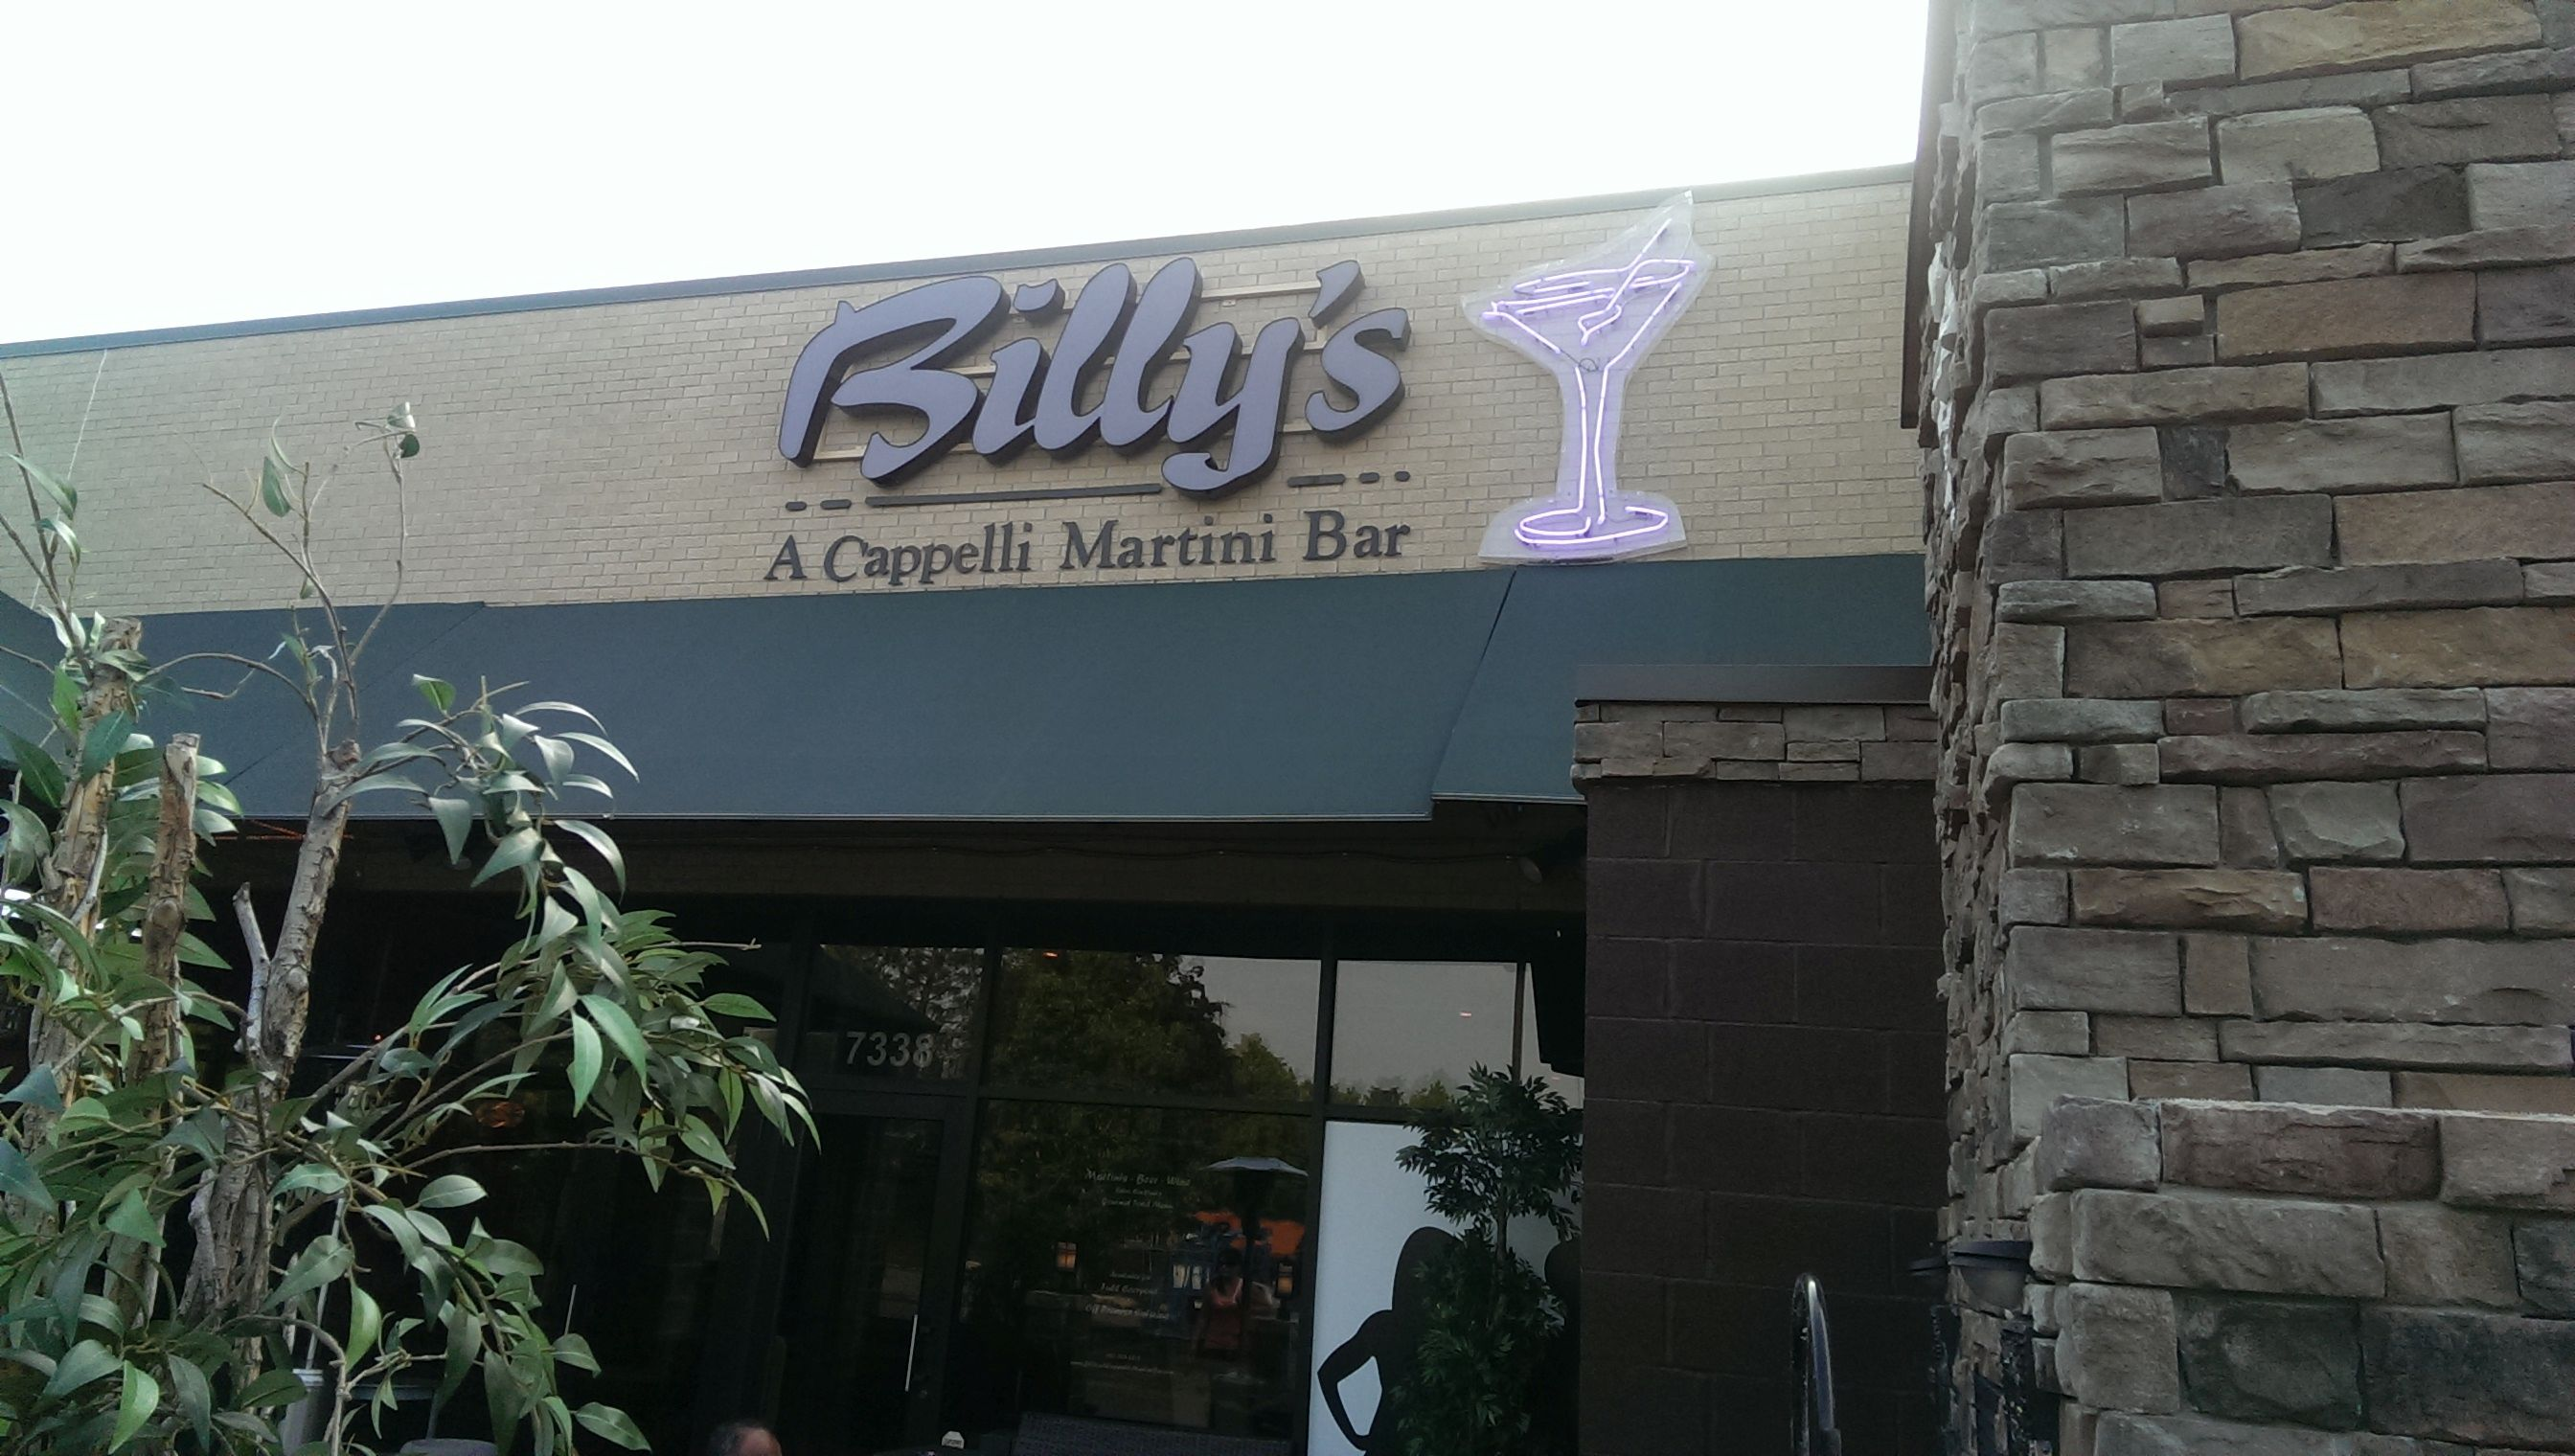 Billy's - A Cappelli Martini Bar image 11